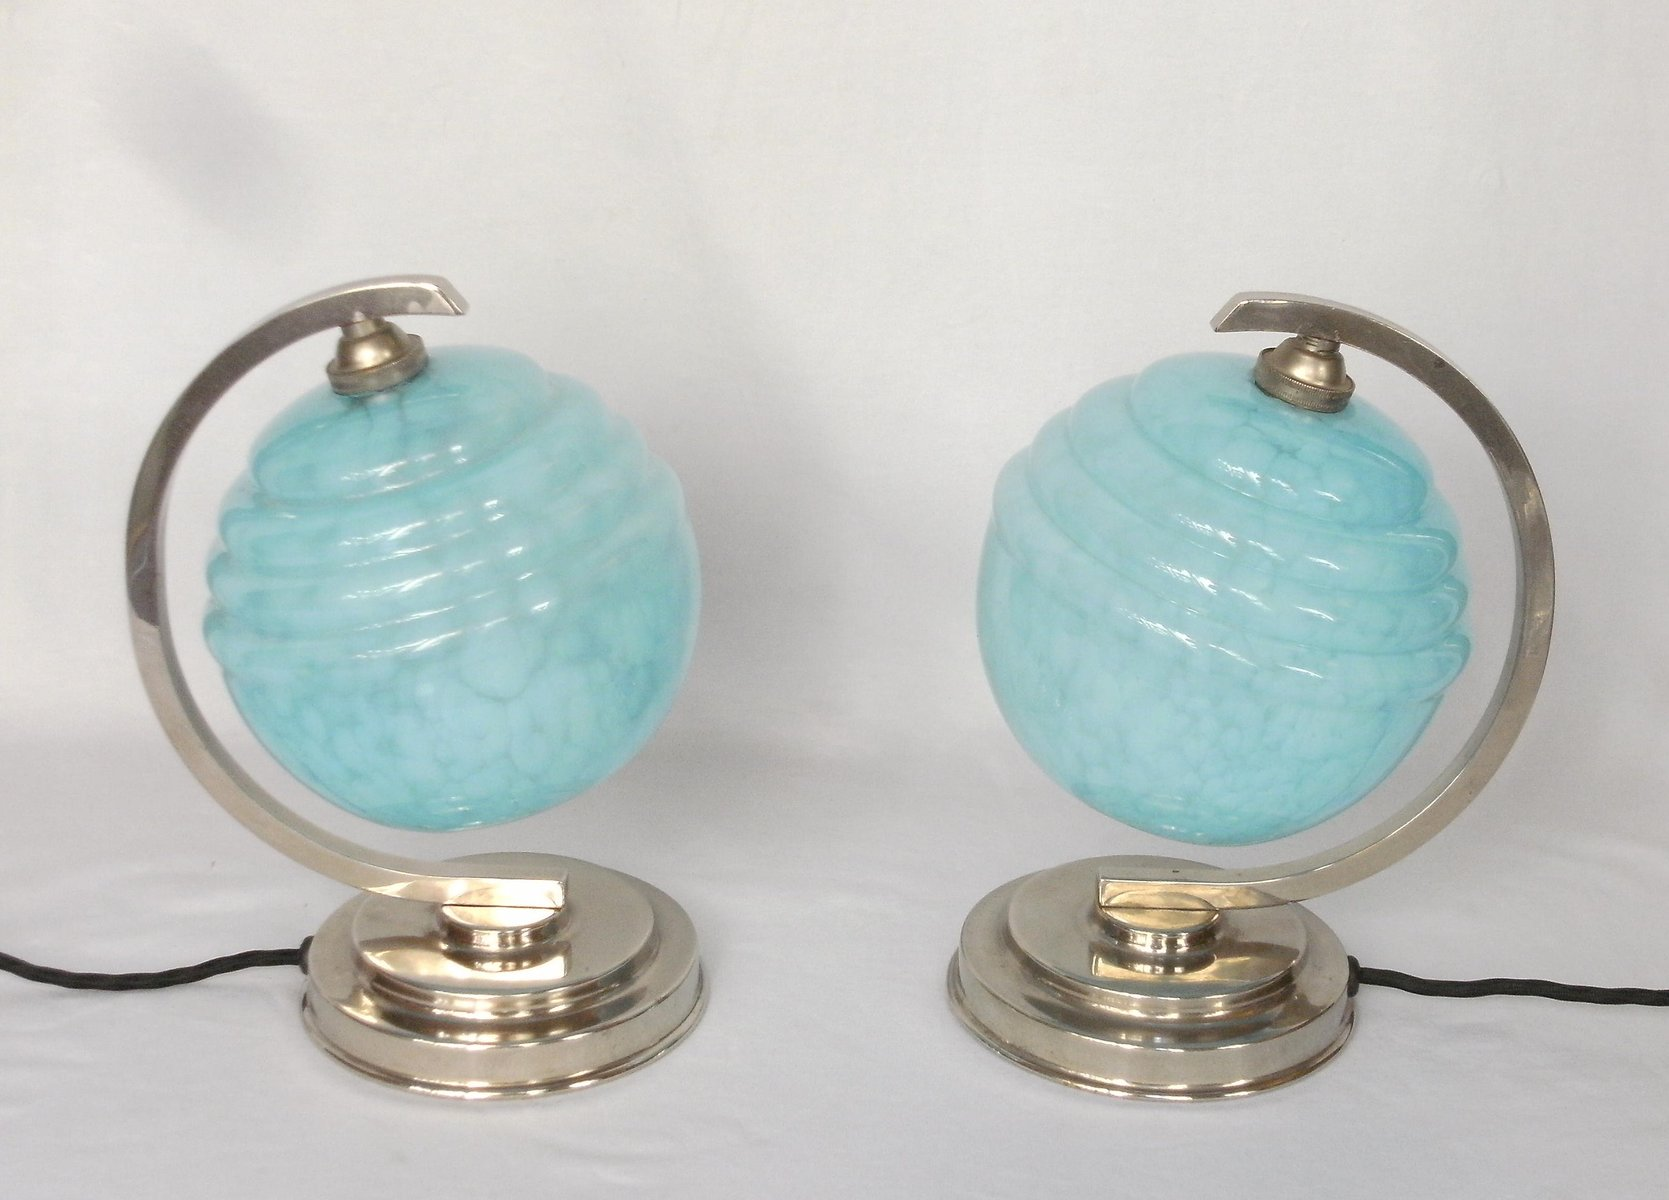 French art deco bedside table lamps set of 2 for sale at pamono geotapseo Images